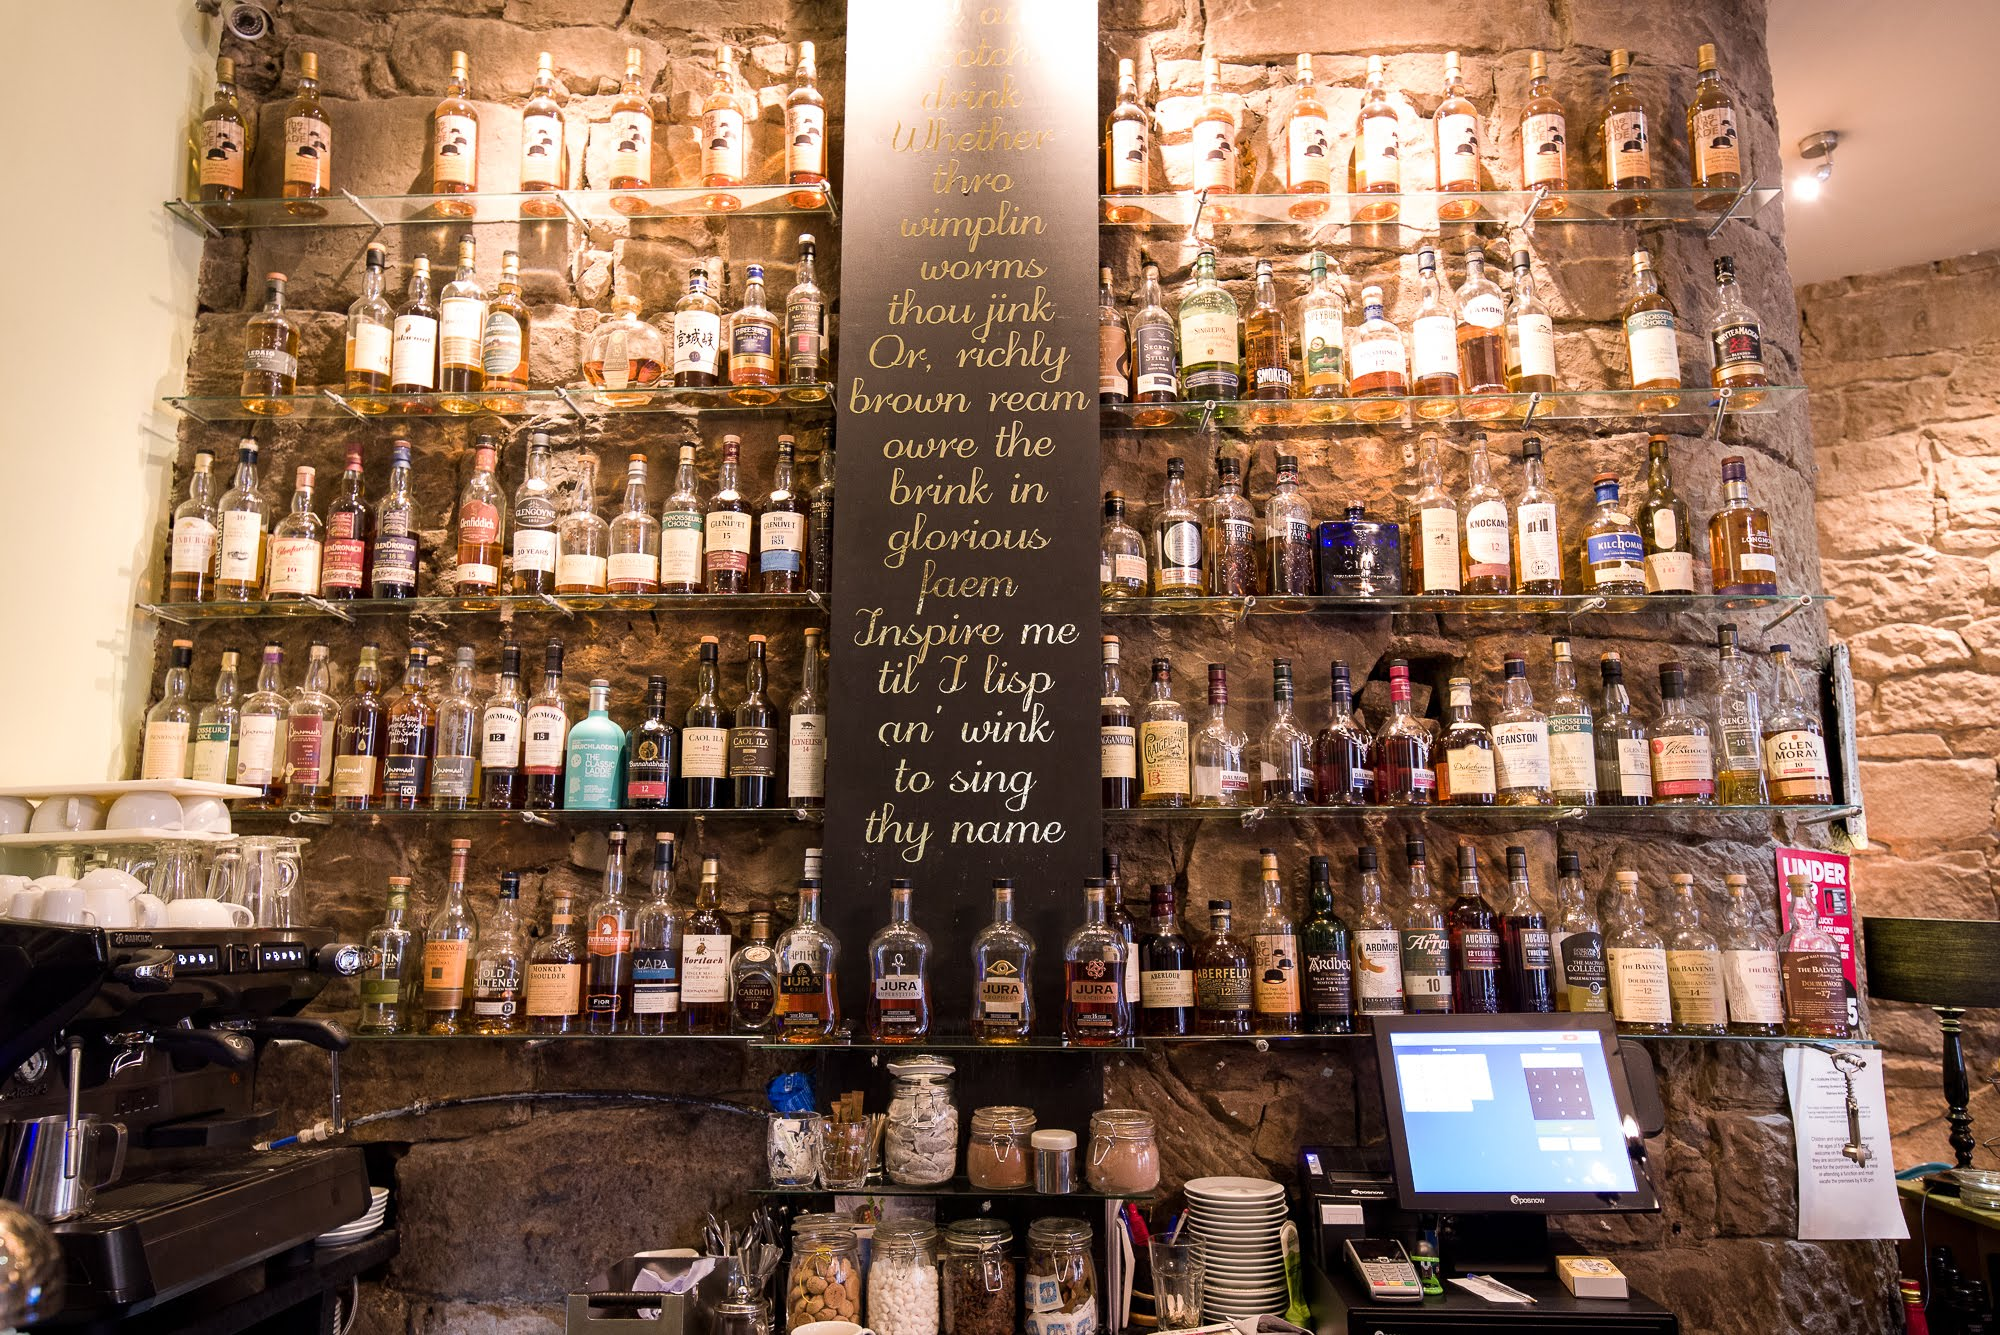 All the whiskies on the shelves in The Arcade Haggis and Whisky House.